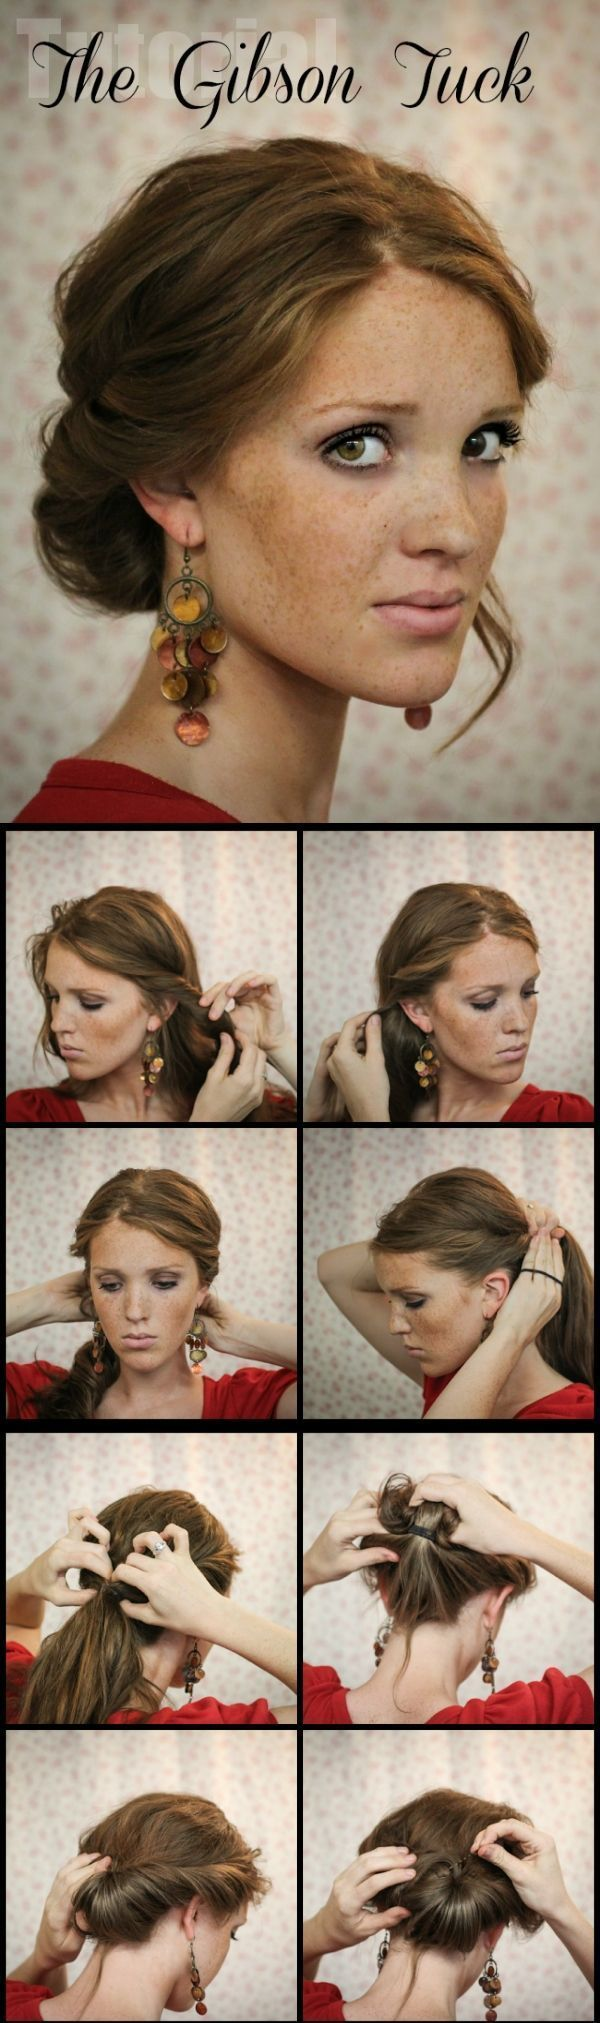 the Gibson tuck - cute, slightly messy hair updo - link bad, but the photos explain it